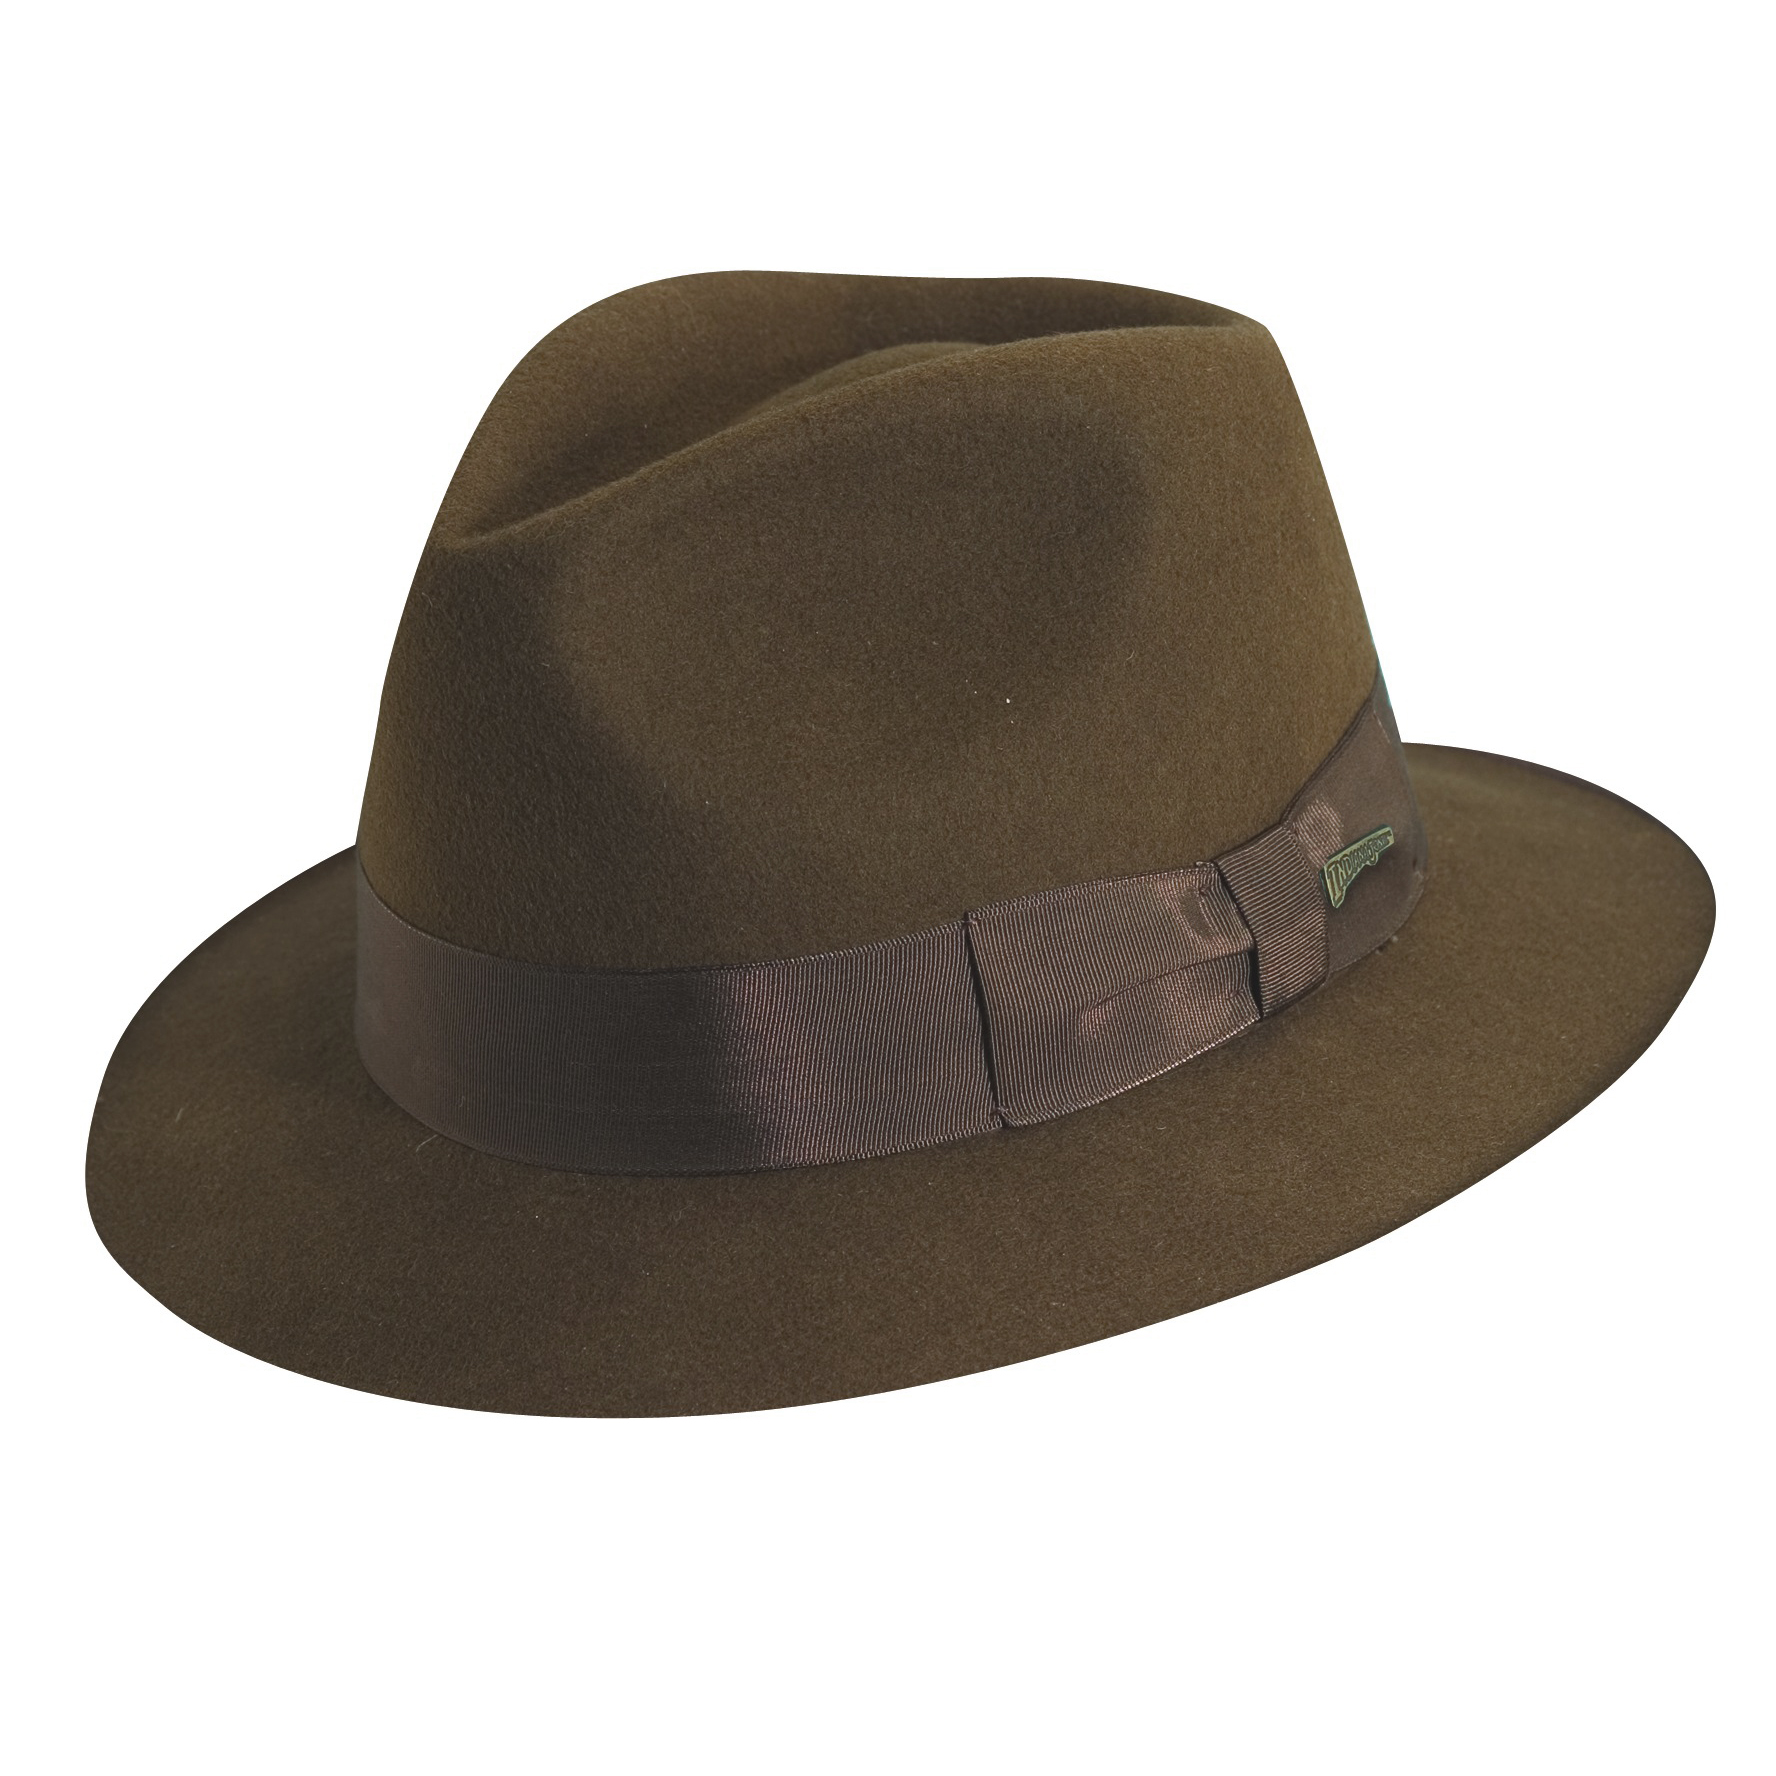 indiana jones wool felt fedora hat with leather sweatband explorer hats. Black Bedroom Furniture Sets. Home Design Ideas